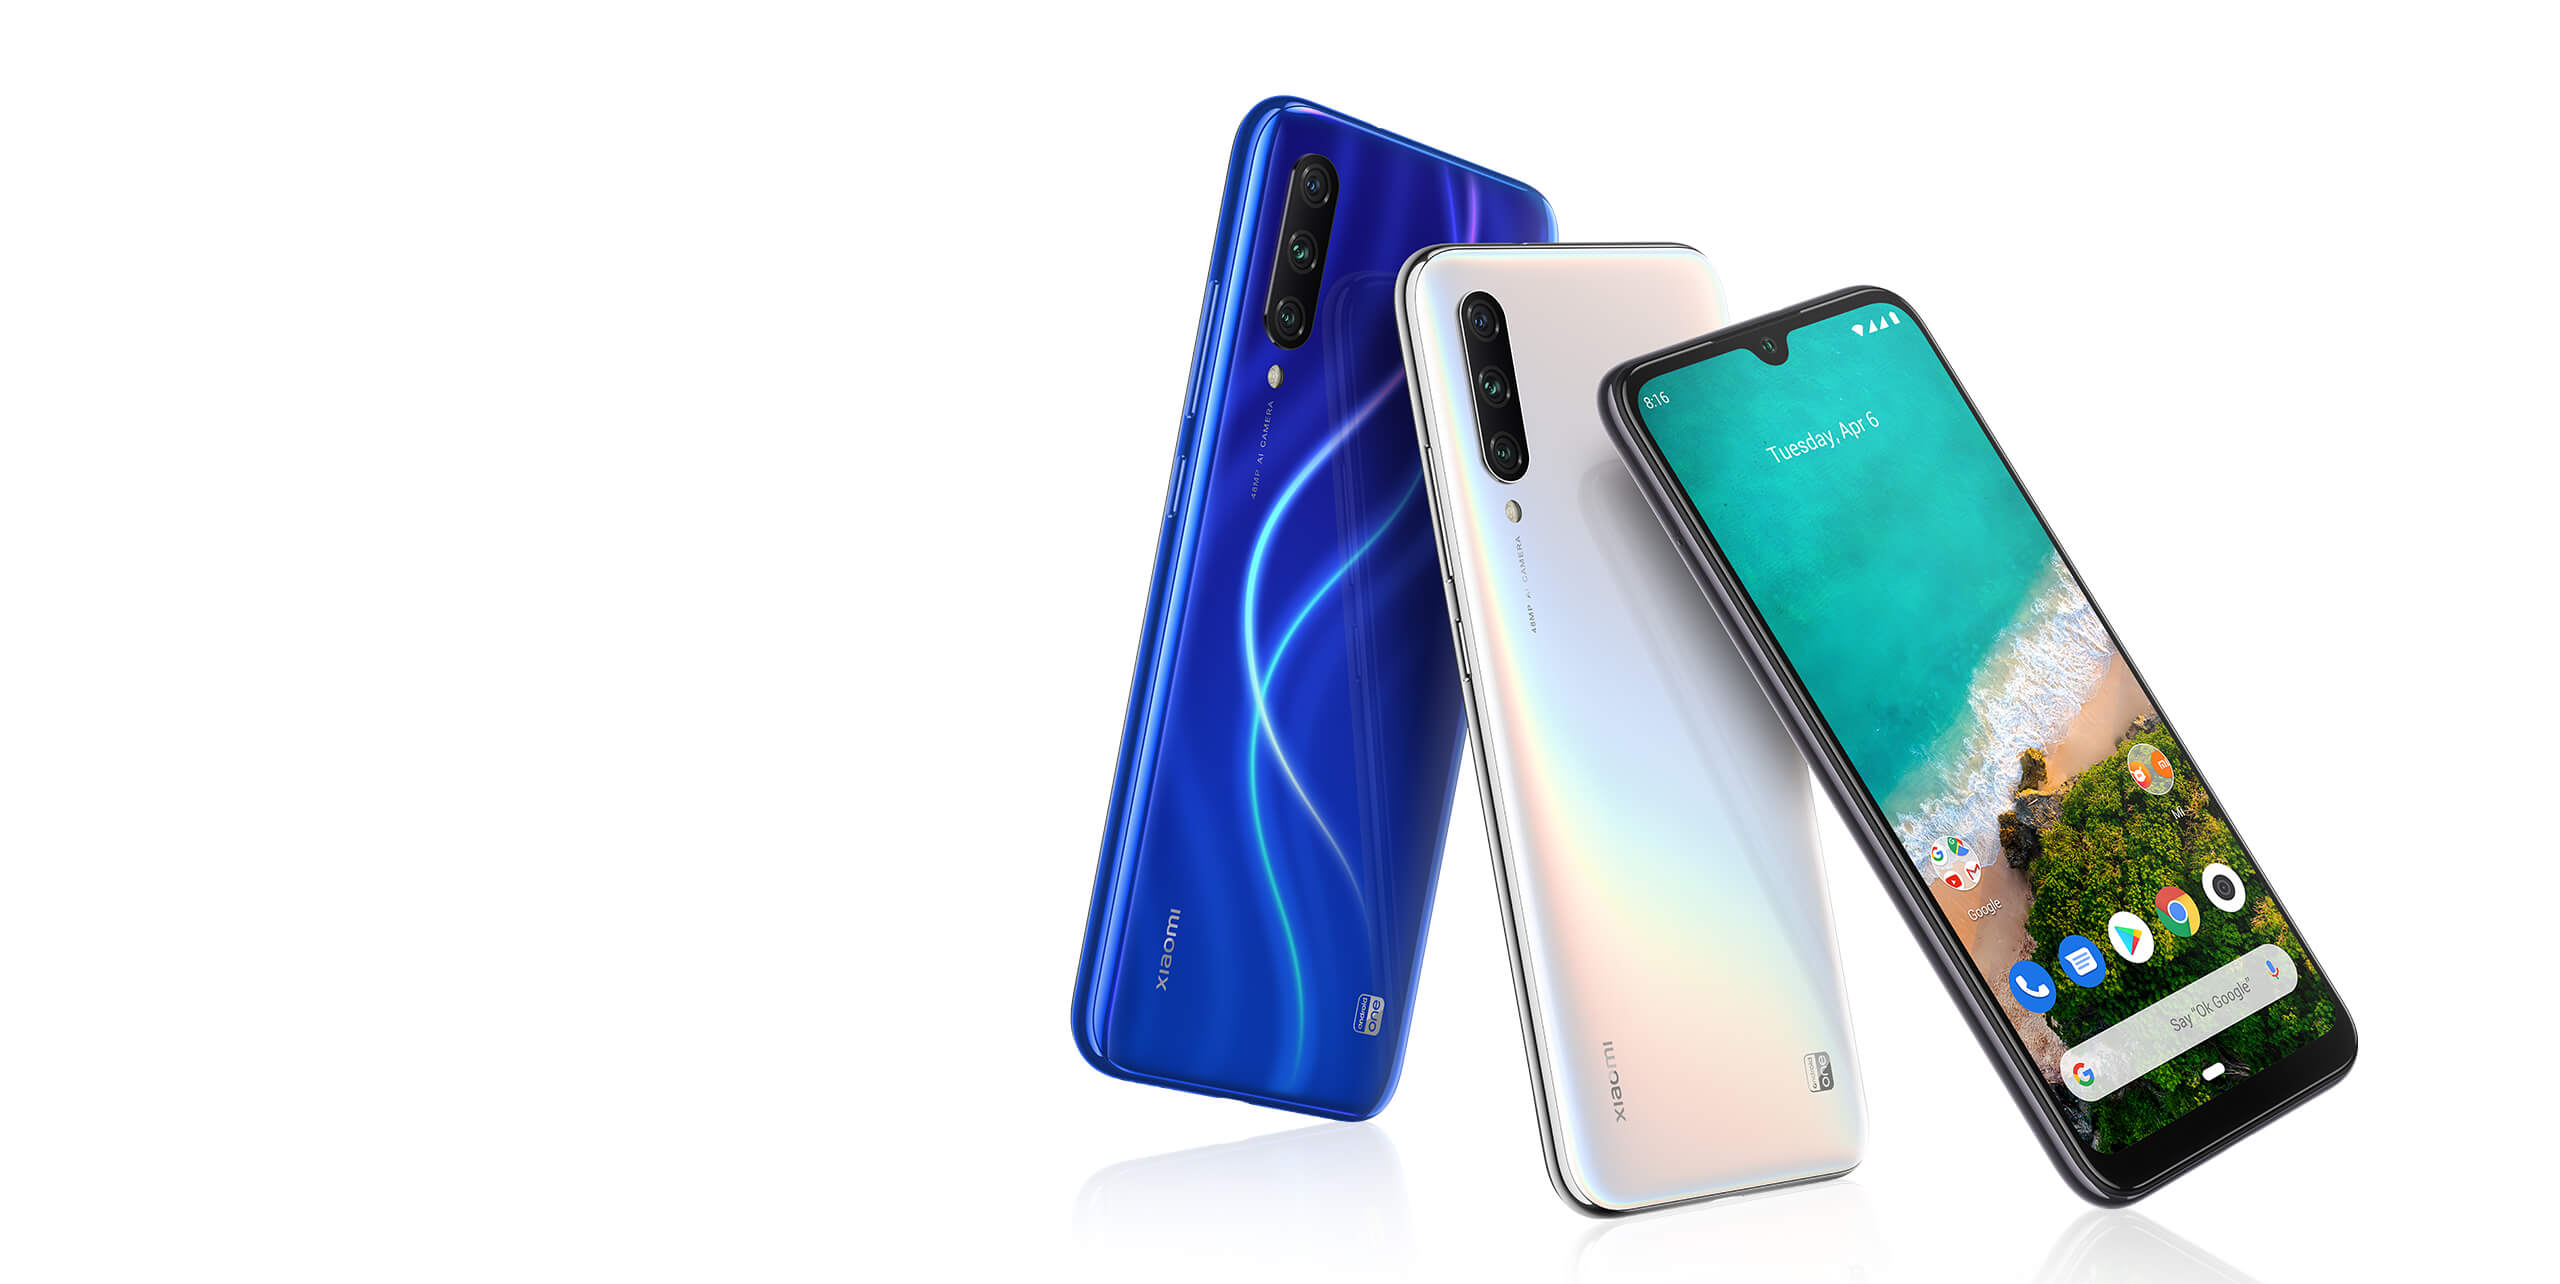 The Mi A3 Has Stock Android, Triple Cameras at The Rear and an Unbelievable Price